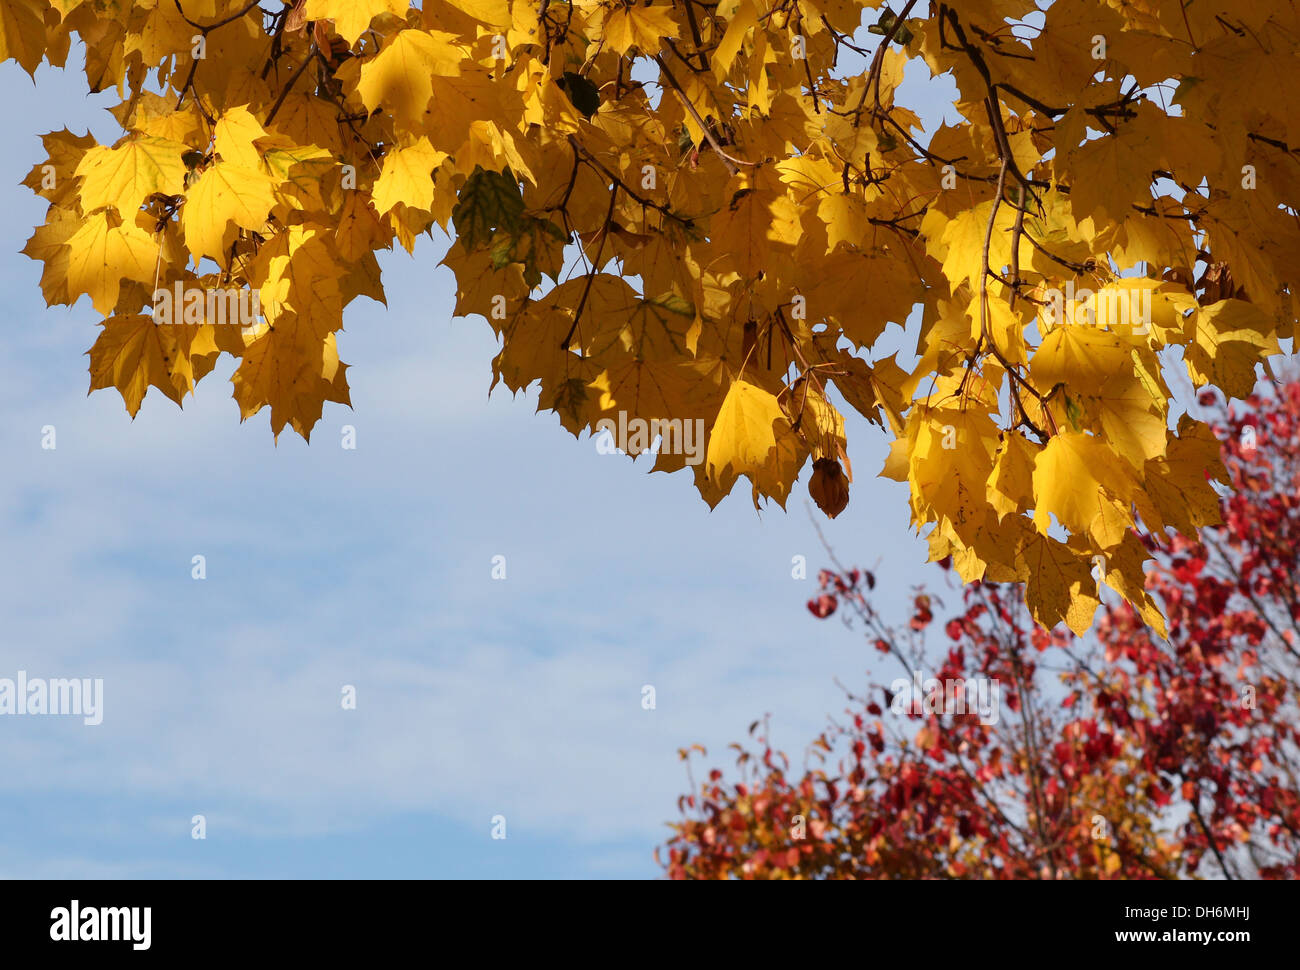 Maple tree yellow autumn leaves against a blue sky. - Stock Image